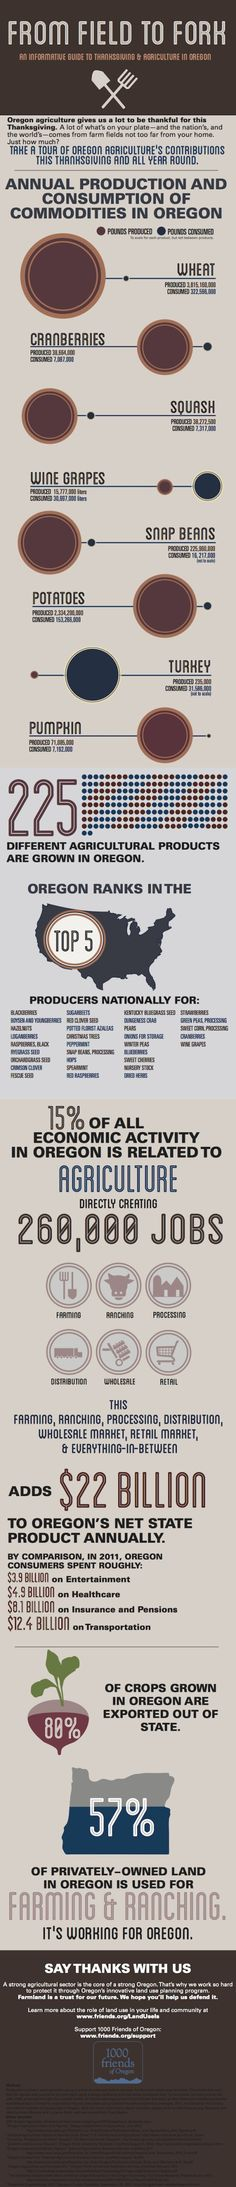 Found this so interesting. Over half the farms in Oregon are privately owned. There are over 1,000 farms that have been in the same family for over 100 years.